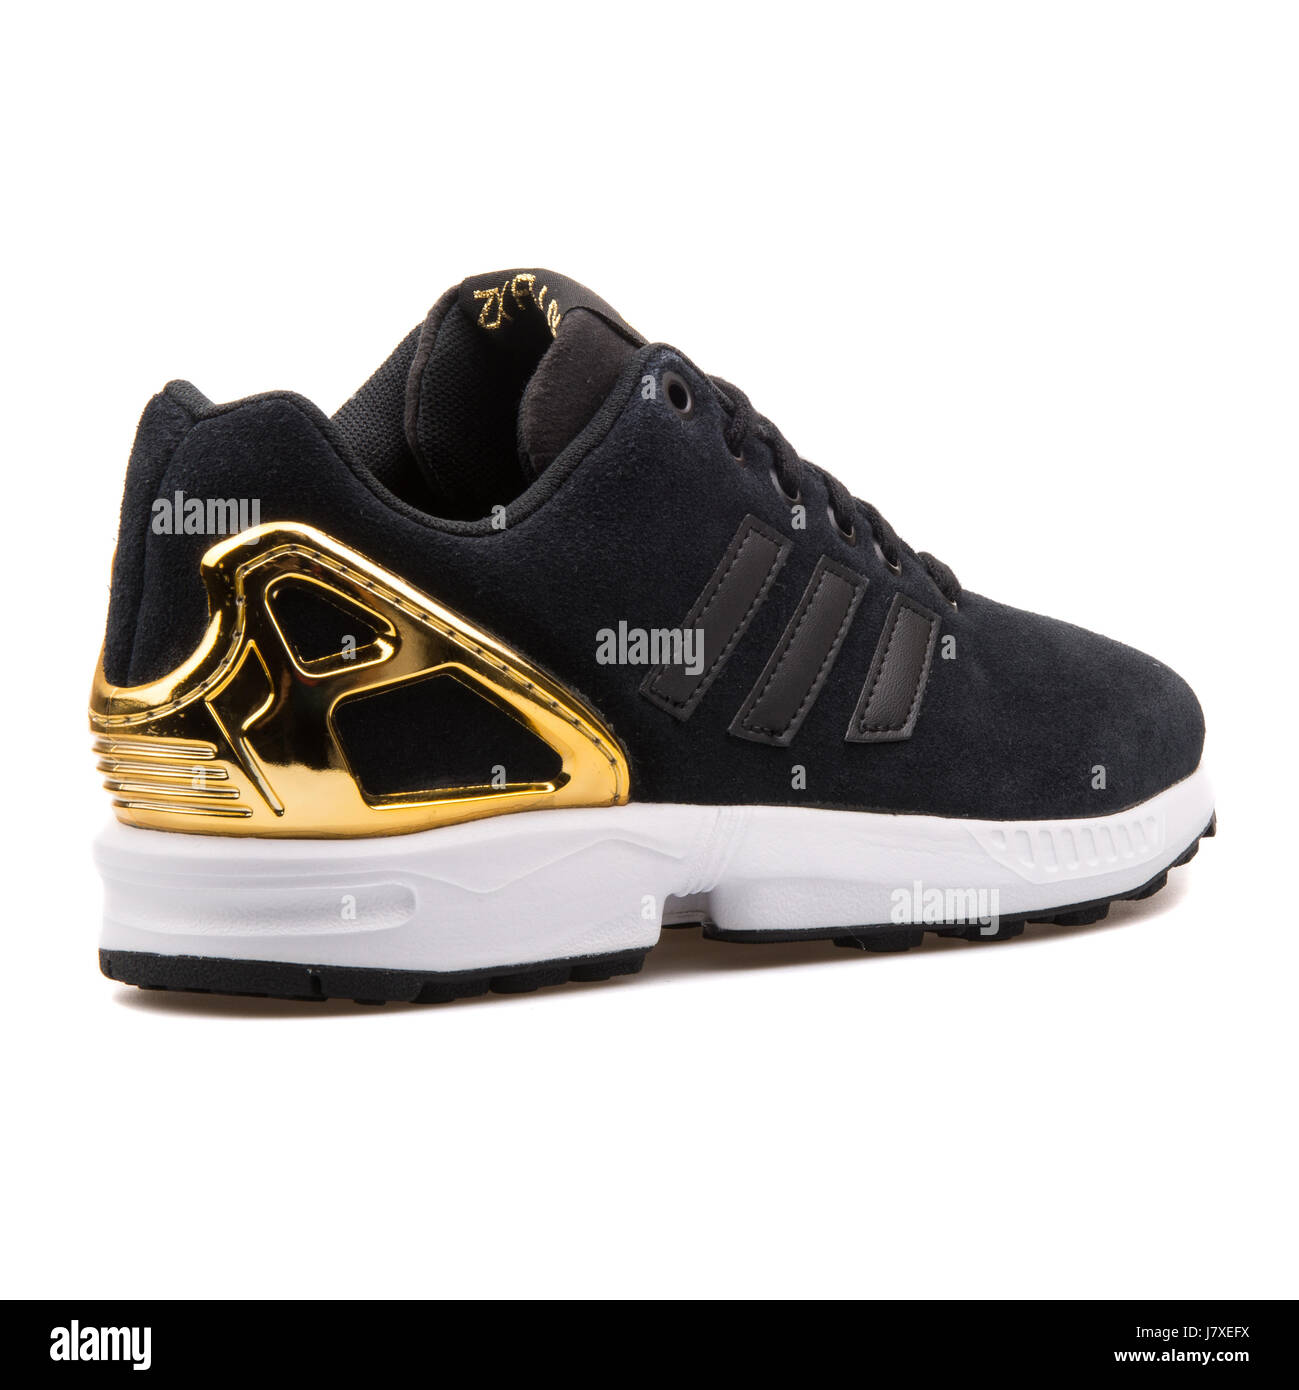 438dfafcc6cea Adidas ZX Flux W Women s Black and Gold Sneakers - B35319 - Stock Image